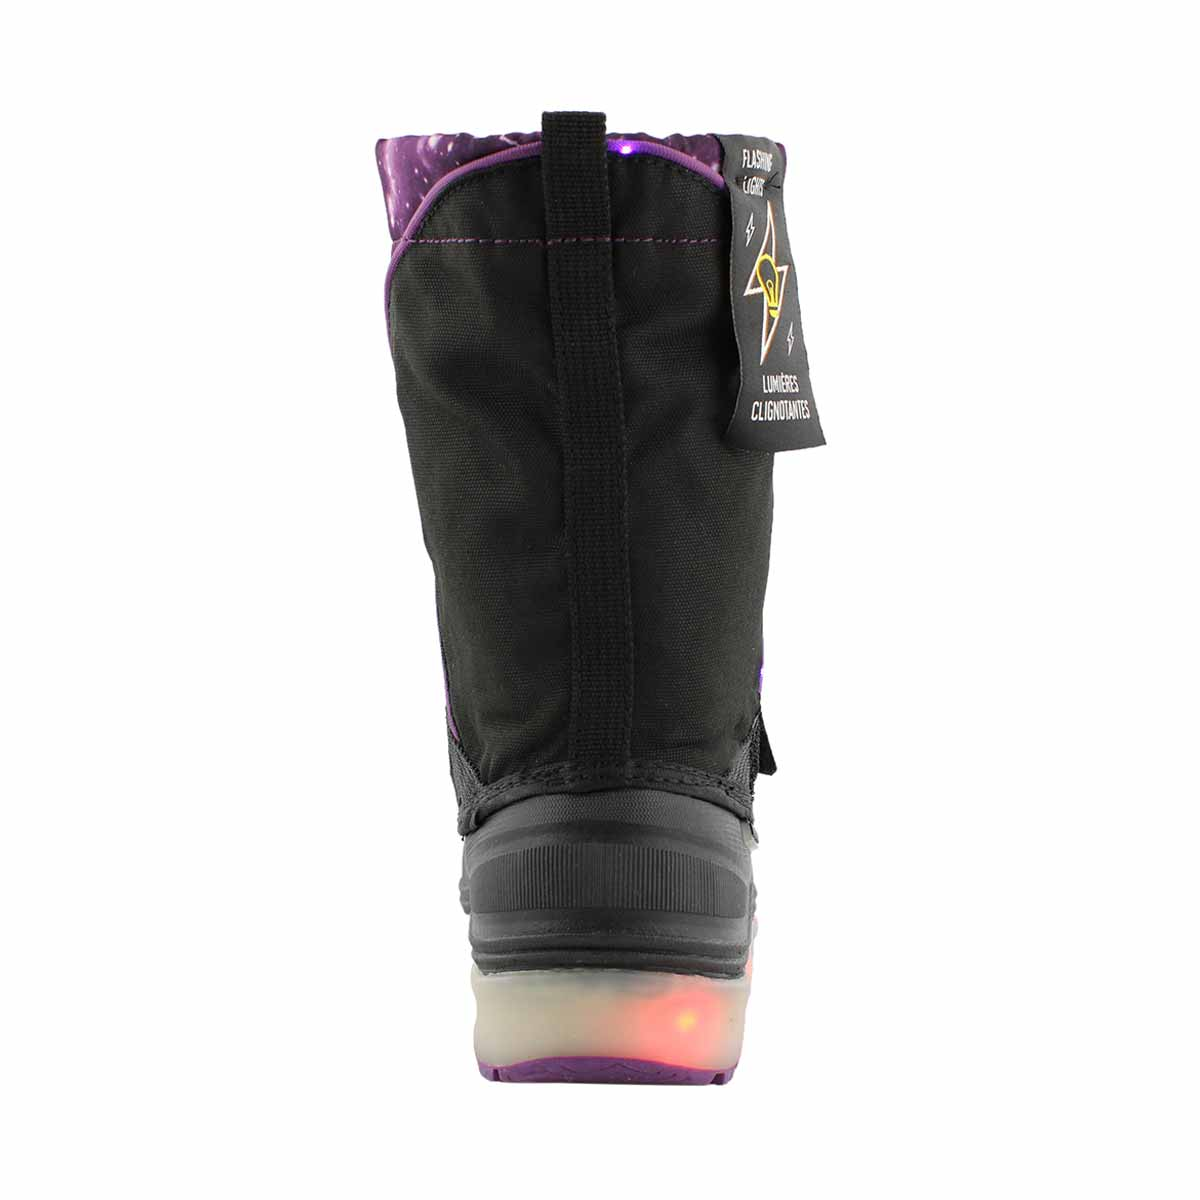 Grls Nebula ppl wp light up winter boot